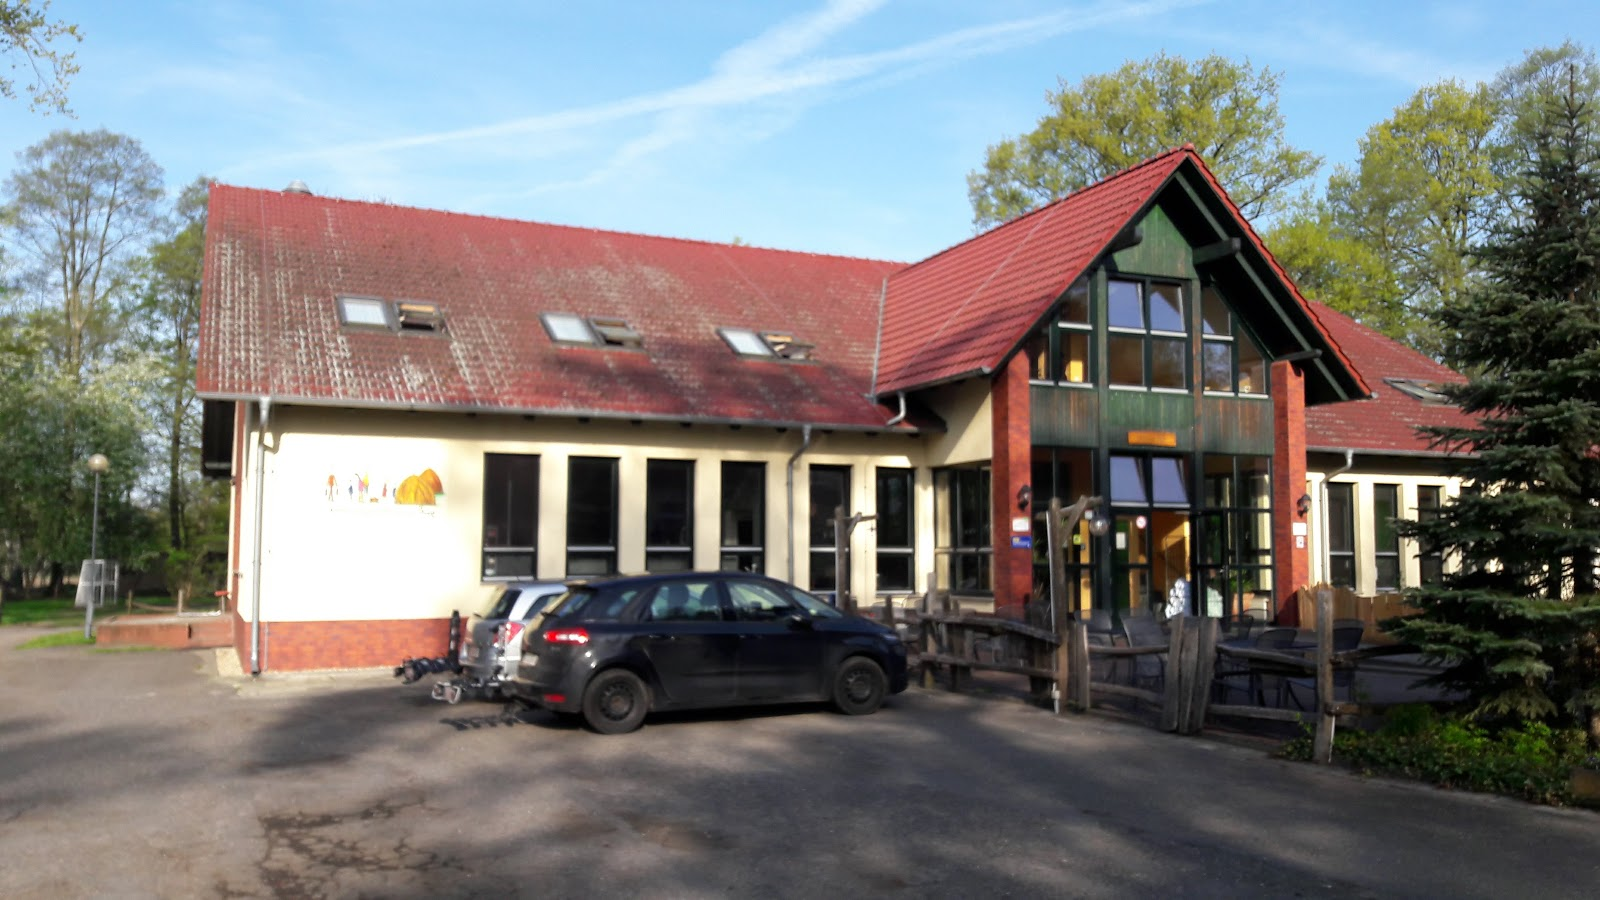 DJH Youth Hostel Burg (Spreewald) with campground Karte - Cottbus ...